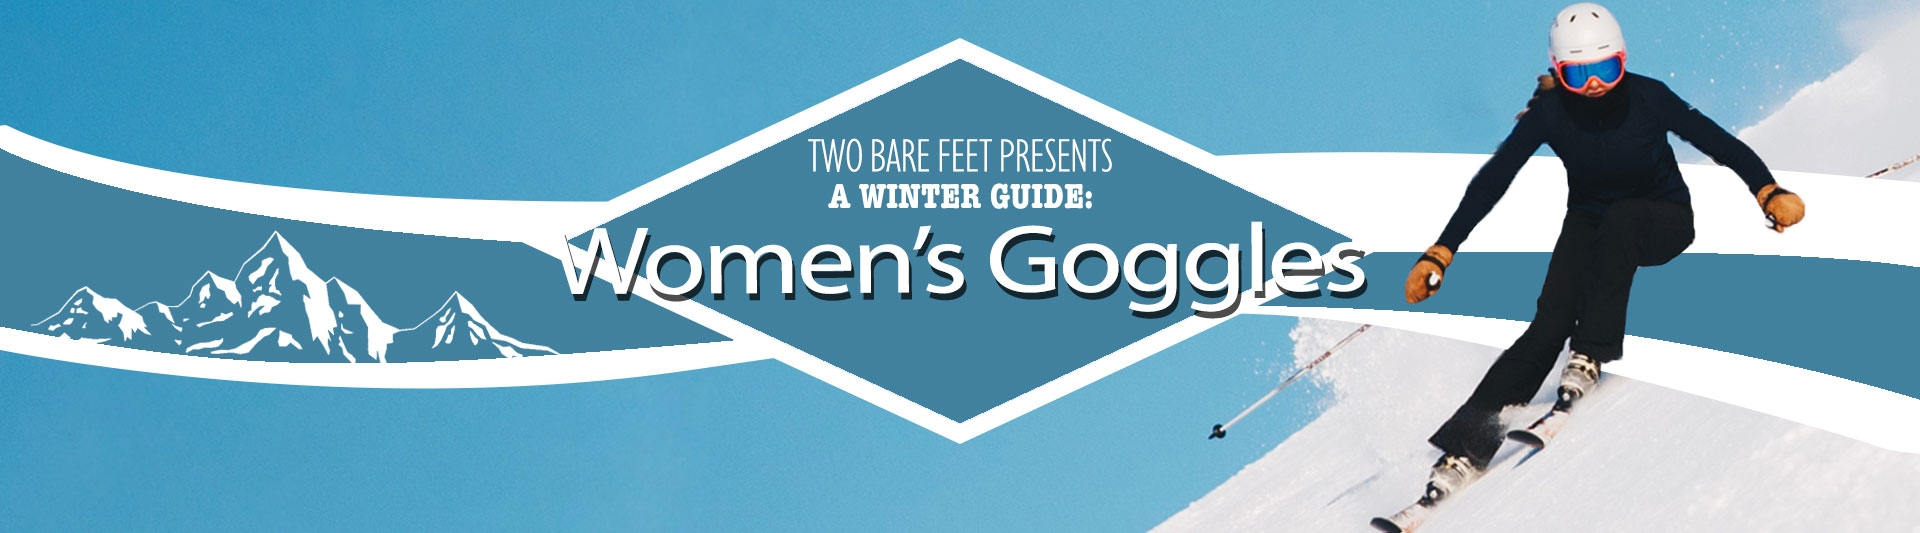 Women's snow goggles banner